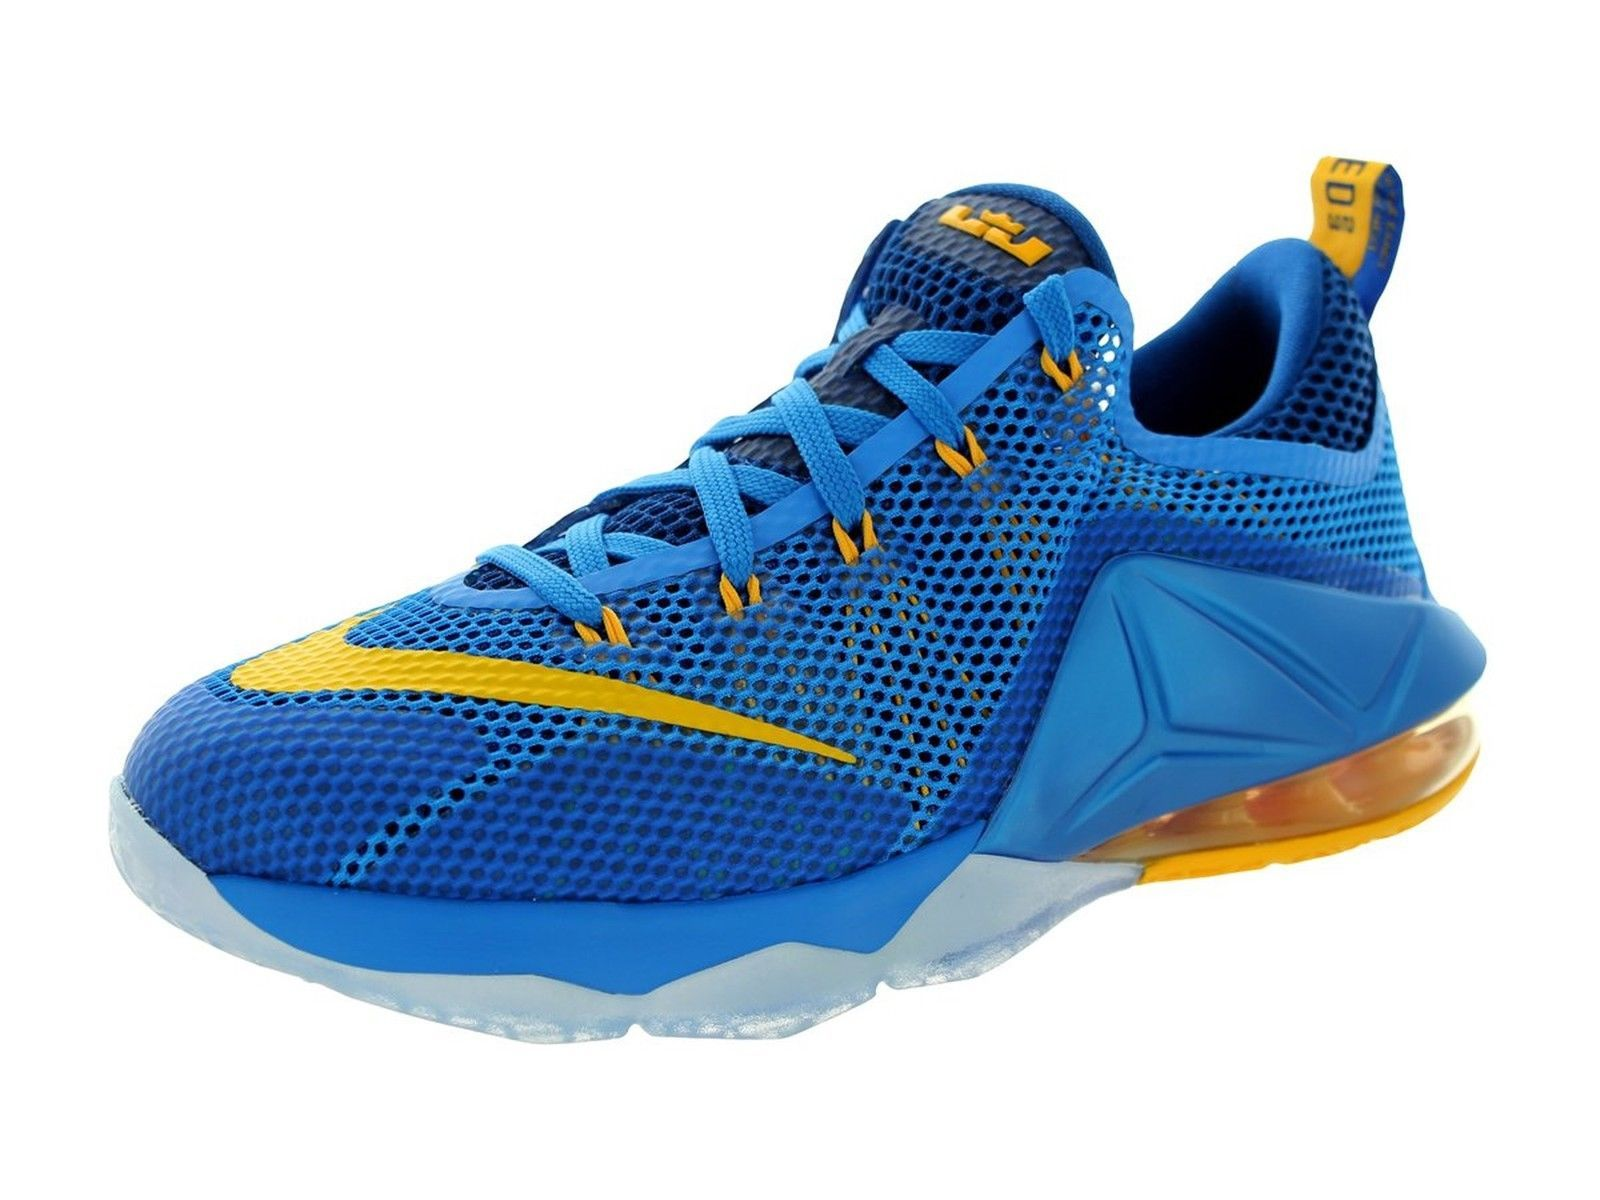 Boys' and girls' basketball shoes are just as stylish in the classroom as they are on the court. Shop brands you both love, like Nike®, Jordan®, adidas® and more. If you find a lower price on basketball shoes for kids somewhere else, we'll match it with our Best Price Guarantee.